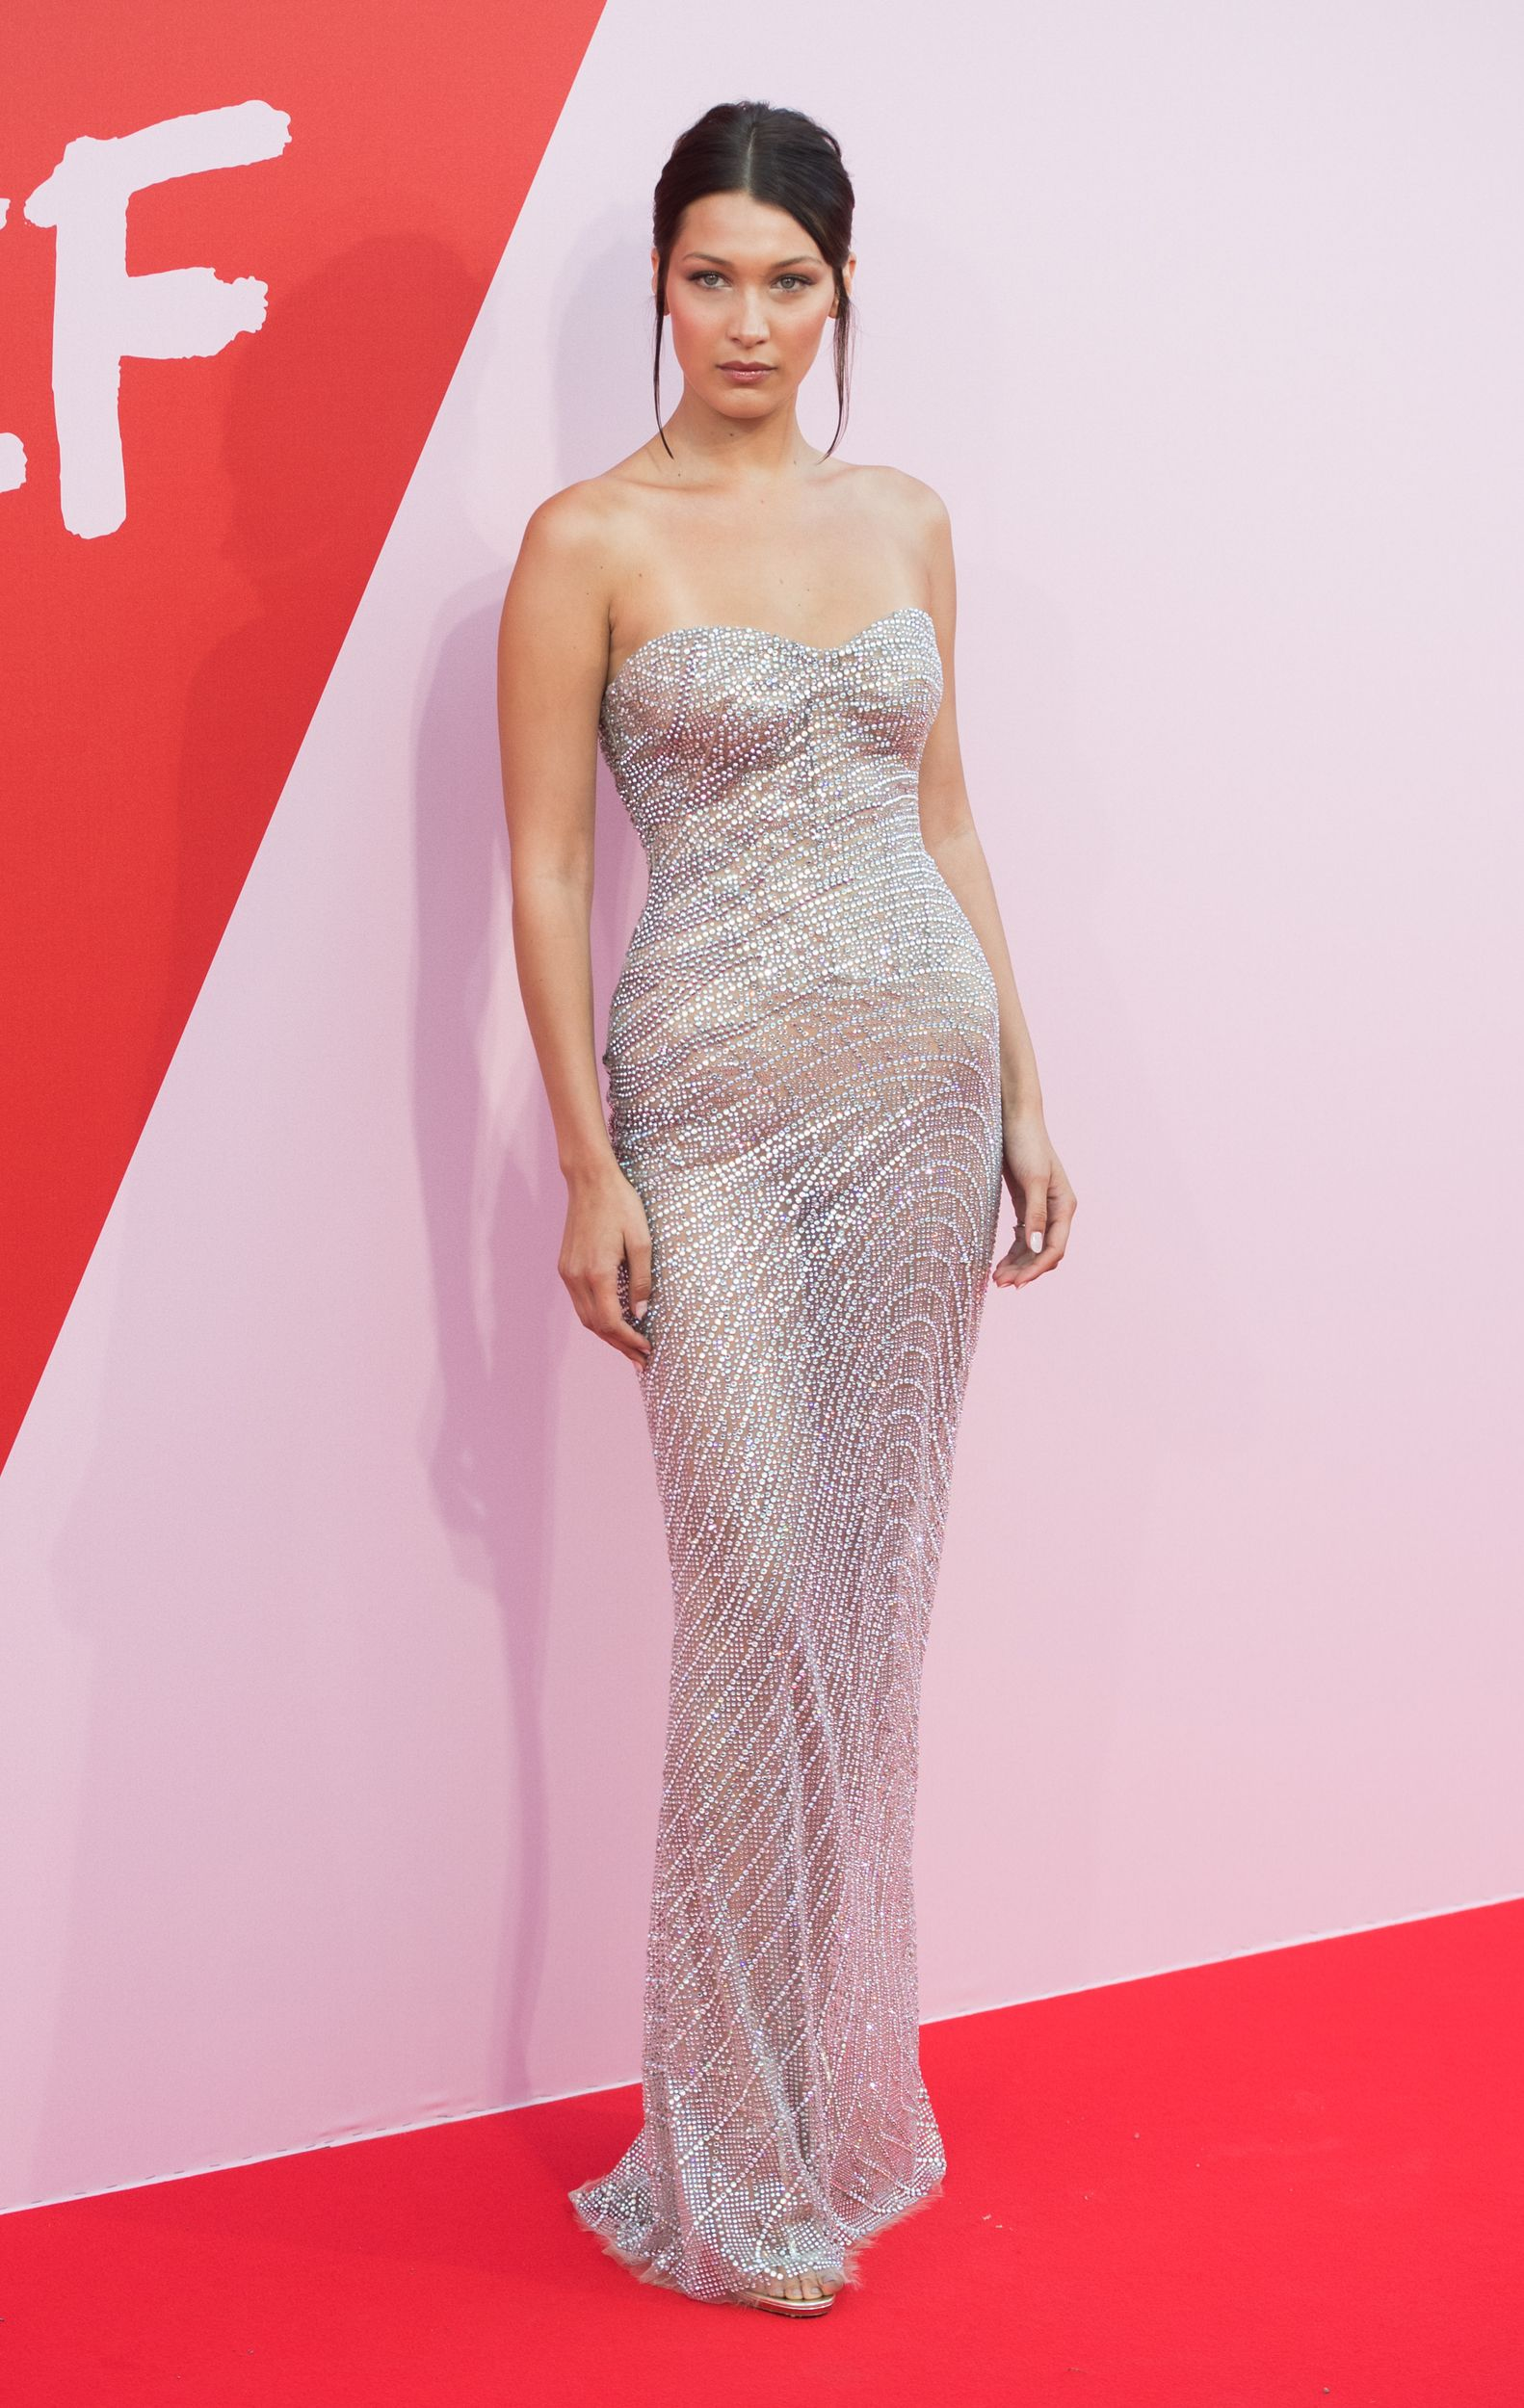 Kendall Jenner Seemingly Commits Fashion Faux Pas At Cannes Film Festival With Outfit Choice Nice Dresses Red Carpet Dresses Celebrity Dresses